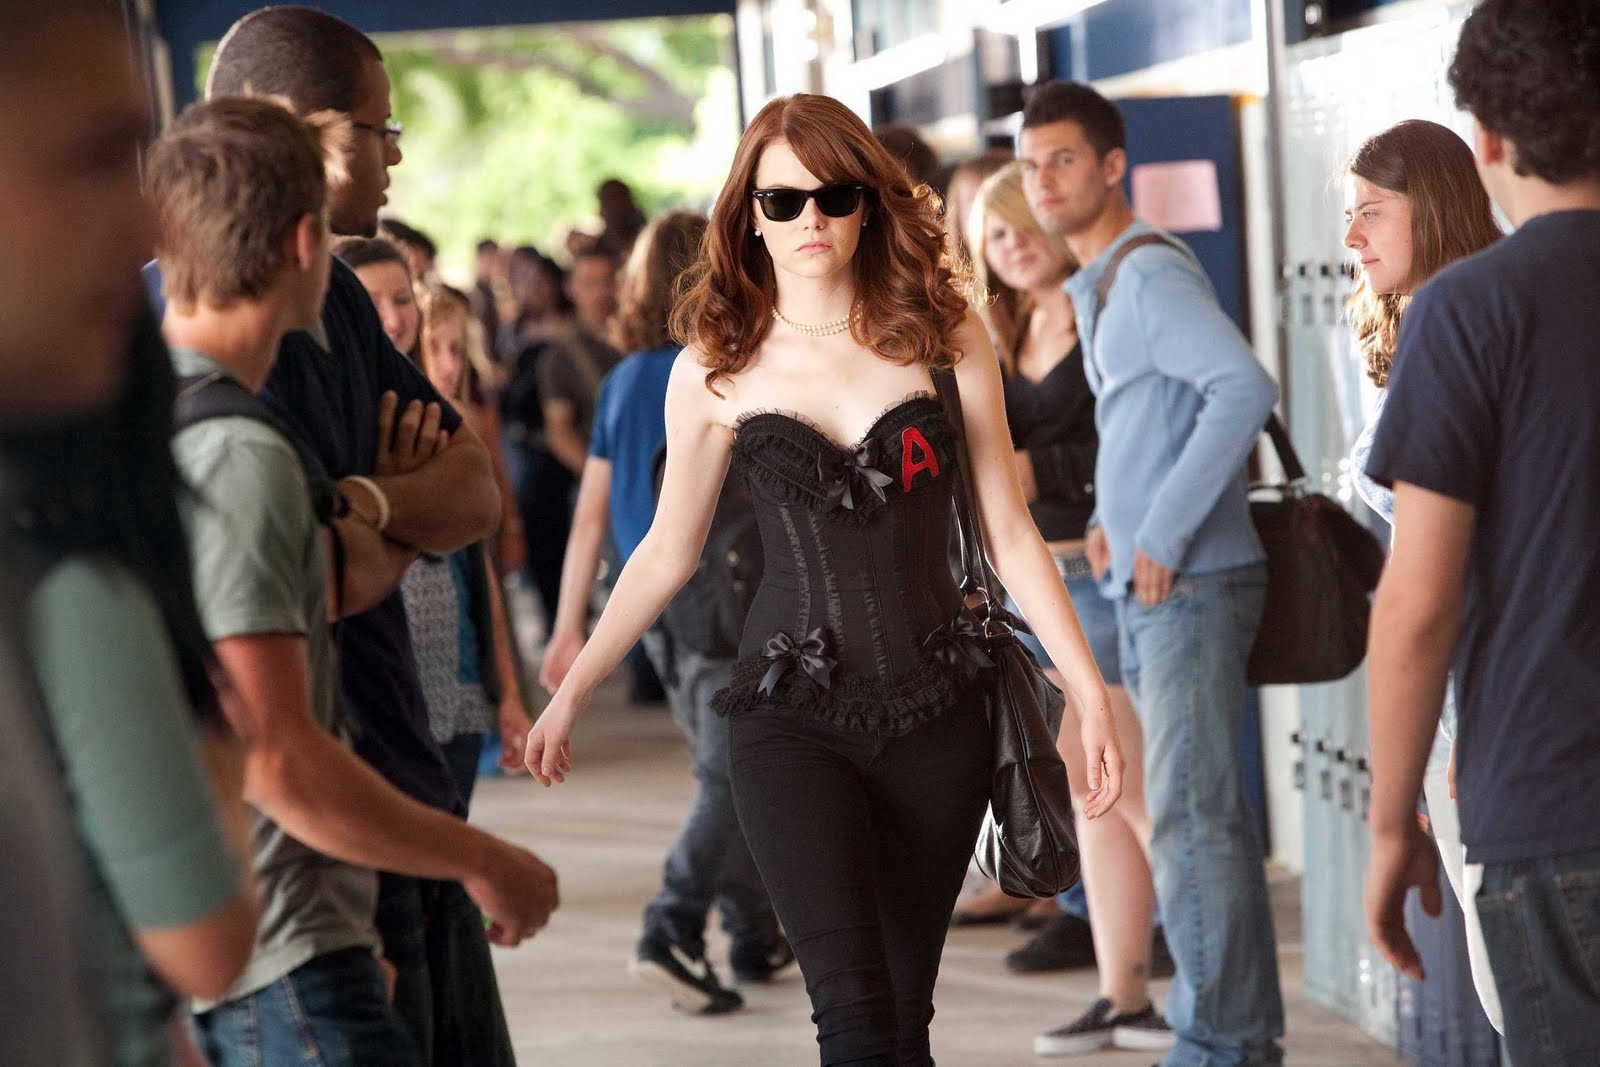 easy a emma stone as olive